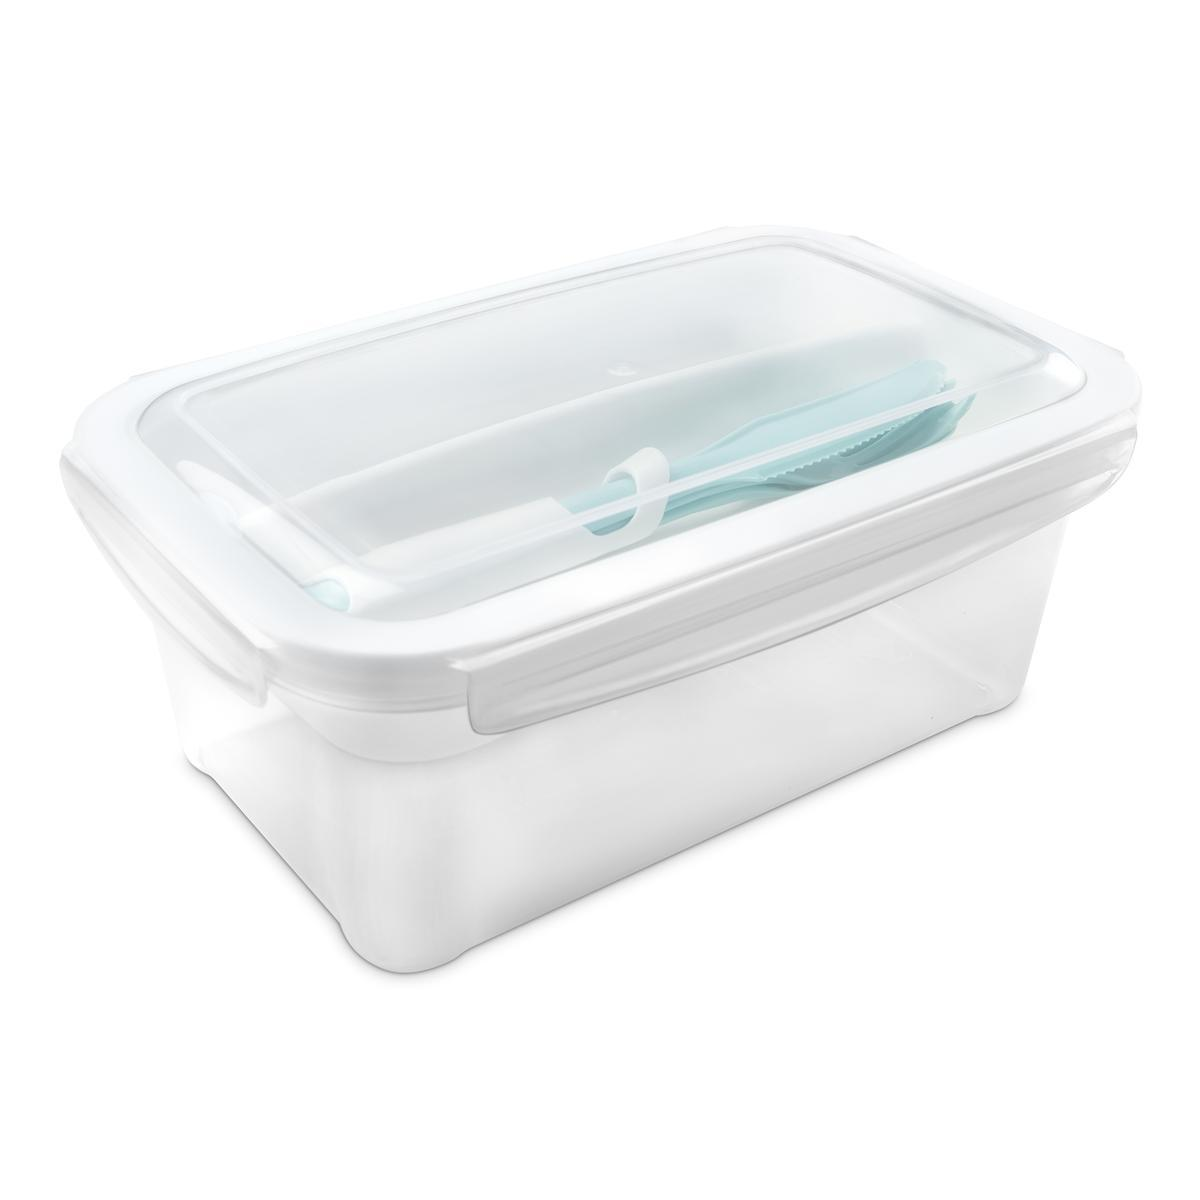 Lunch box hermétique souple - 2L